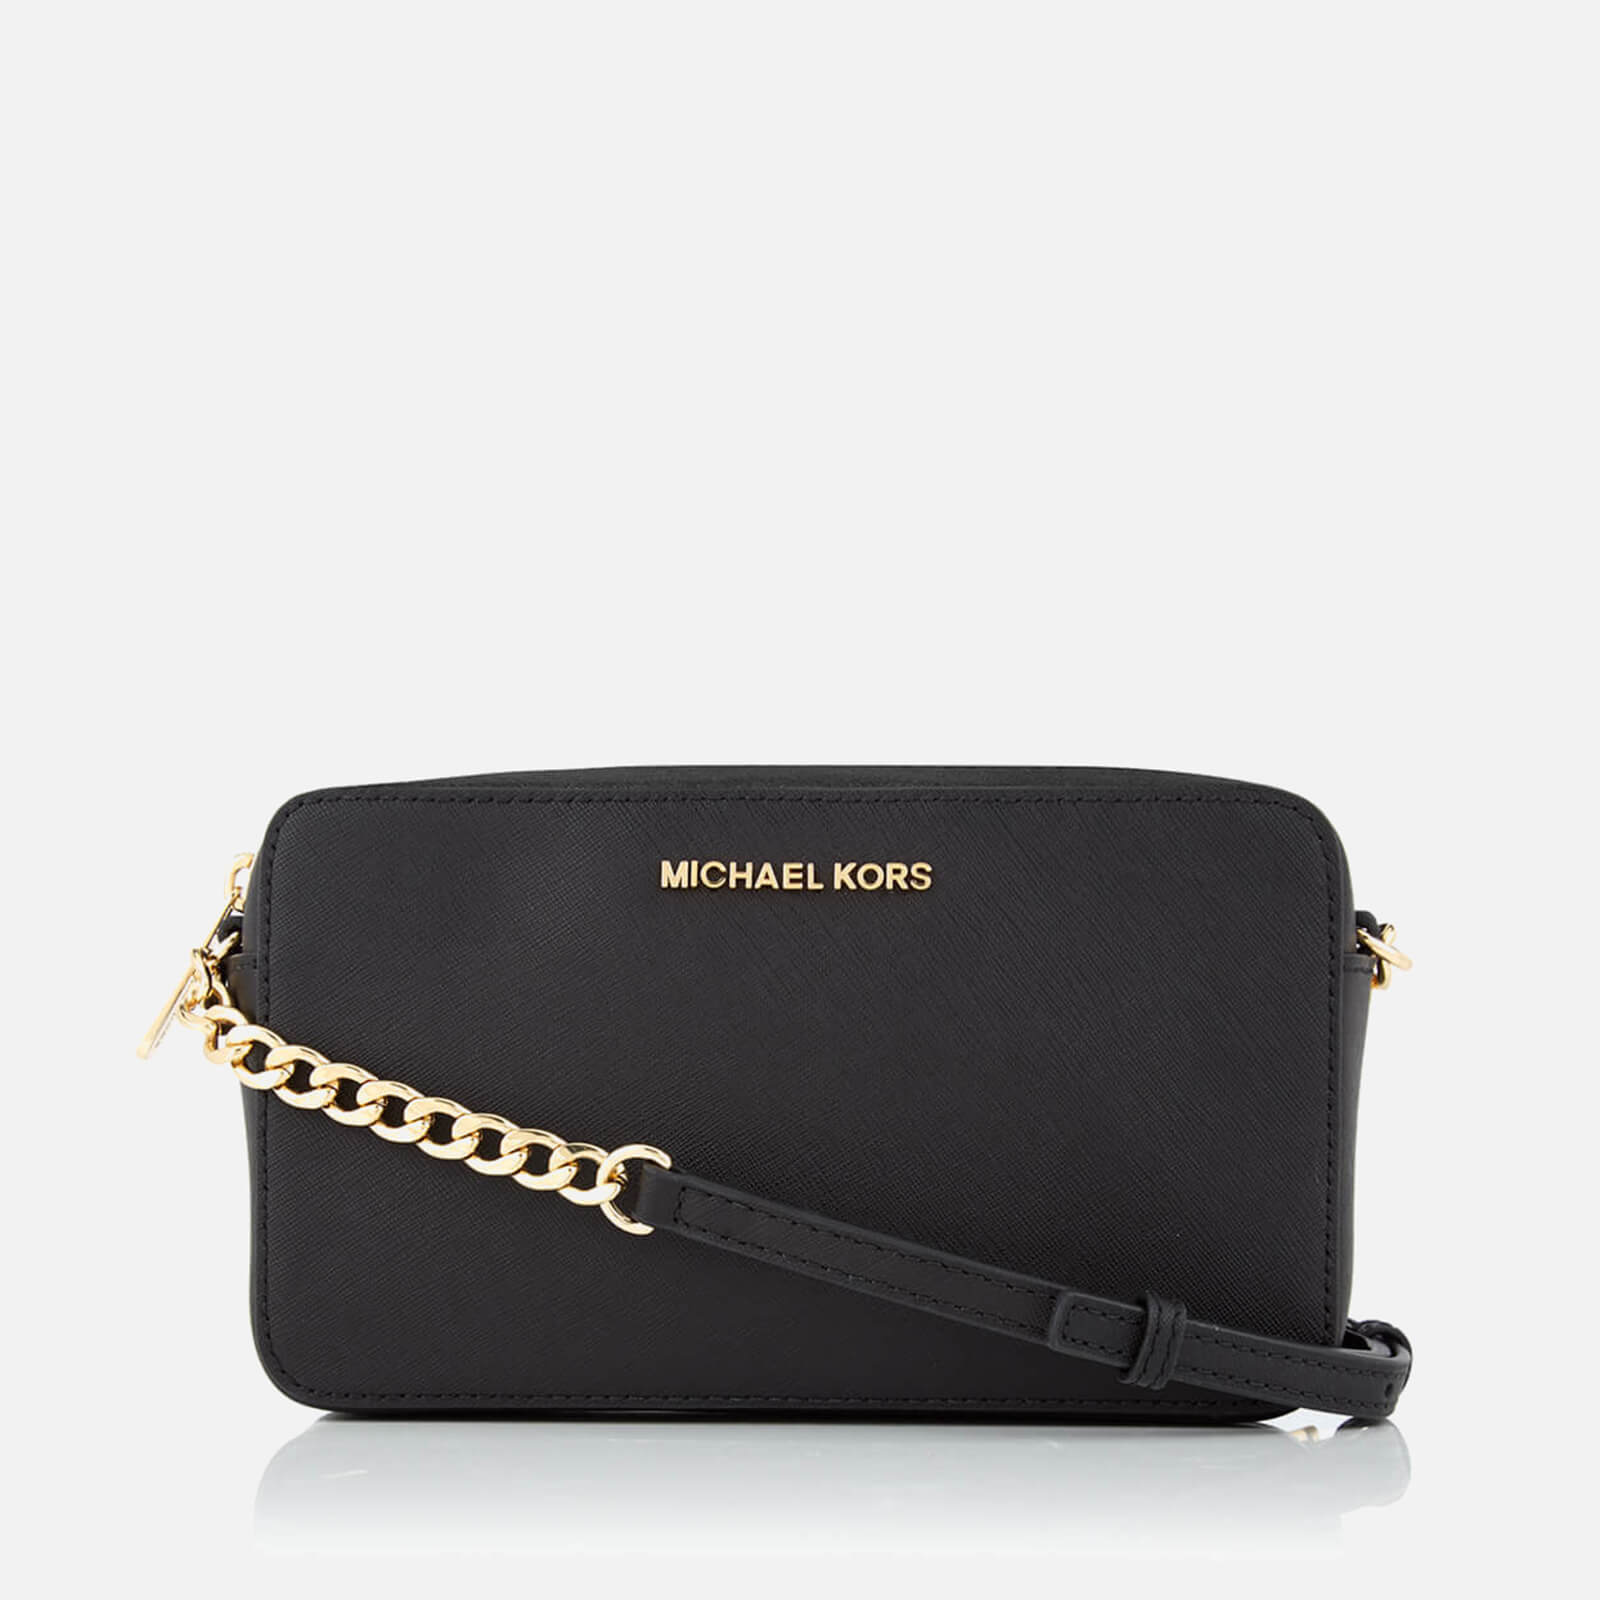 e02456ac74a6 MICHAEL MICHAEL KORS Women's Jet Set Travel Medium East West Cross Body Bag  - Black - Free UK Delivery over £50